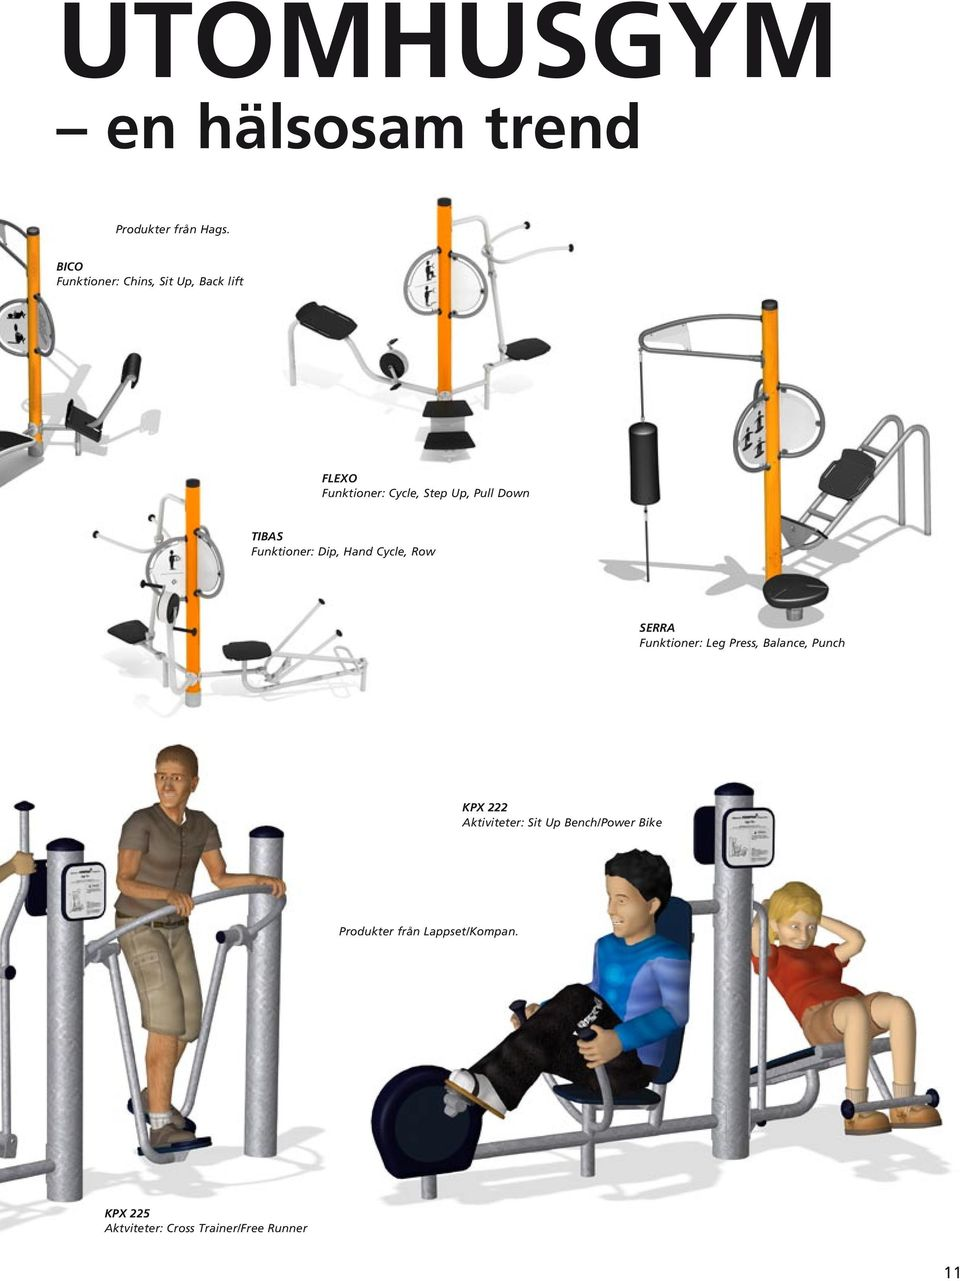 TIBAS Funktioner: Dip, Hand Cycle, Row SERRA Funktioner: Leg Press, Balance, Punch